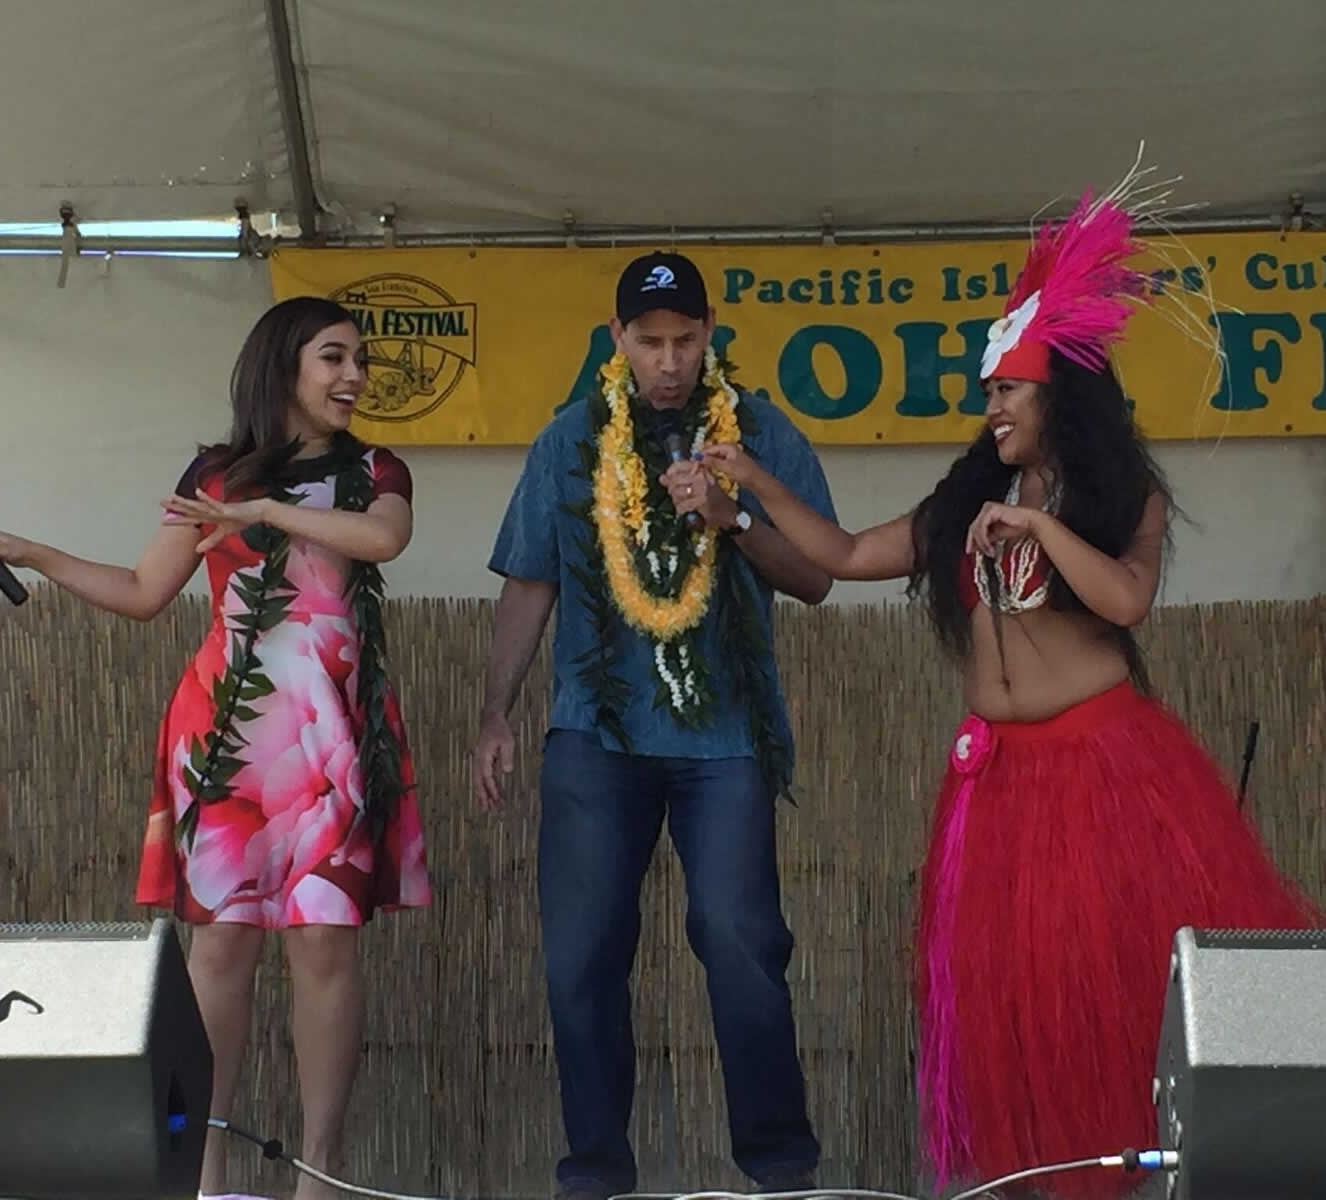 "<div class=""meta image-caption""><div class=""origin-logo origin-image none""><span>none</span></div><span class=""caption-text"">The Aloha Festival at the San Mateo County Event Center on Saturday, August 6, 2016. (KGO-TV)</span></div>"